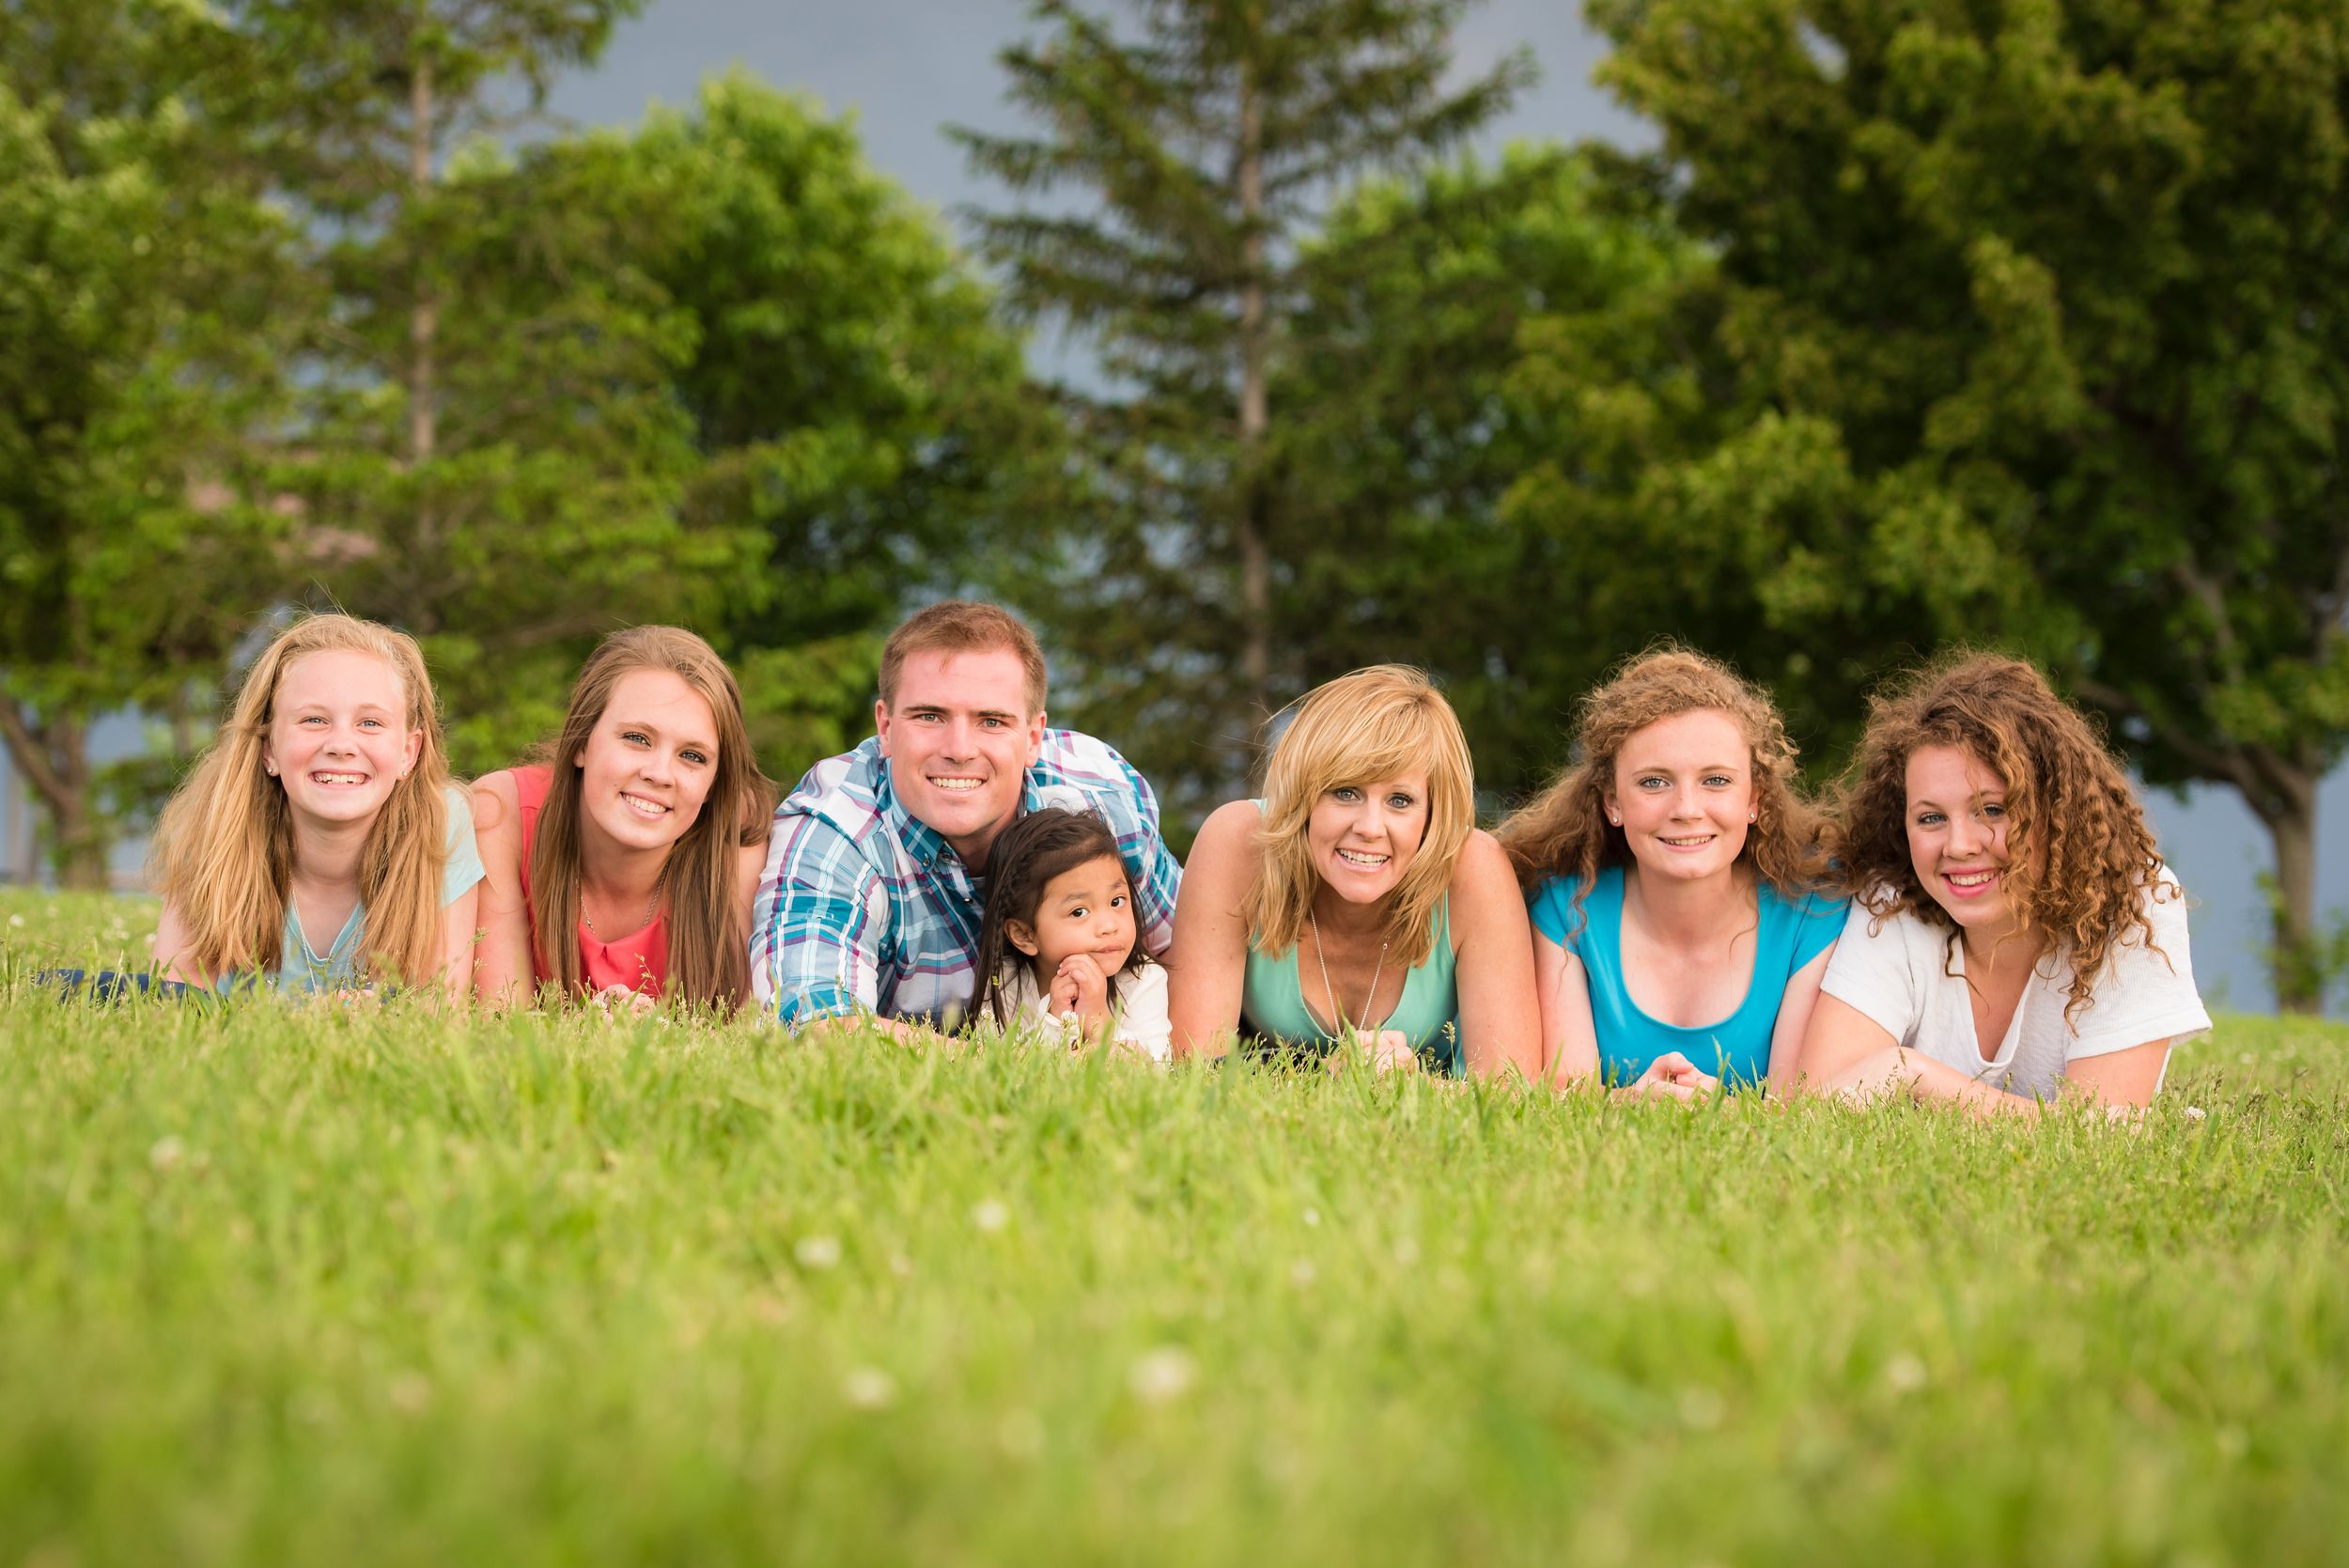 Vanderhorst Family Shoot53.jpg